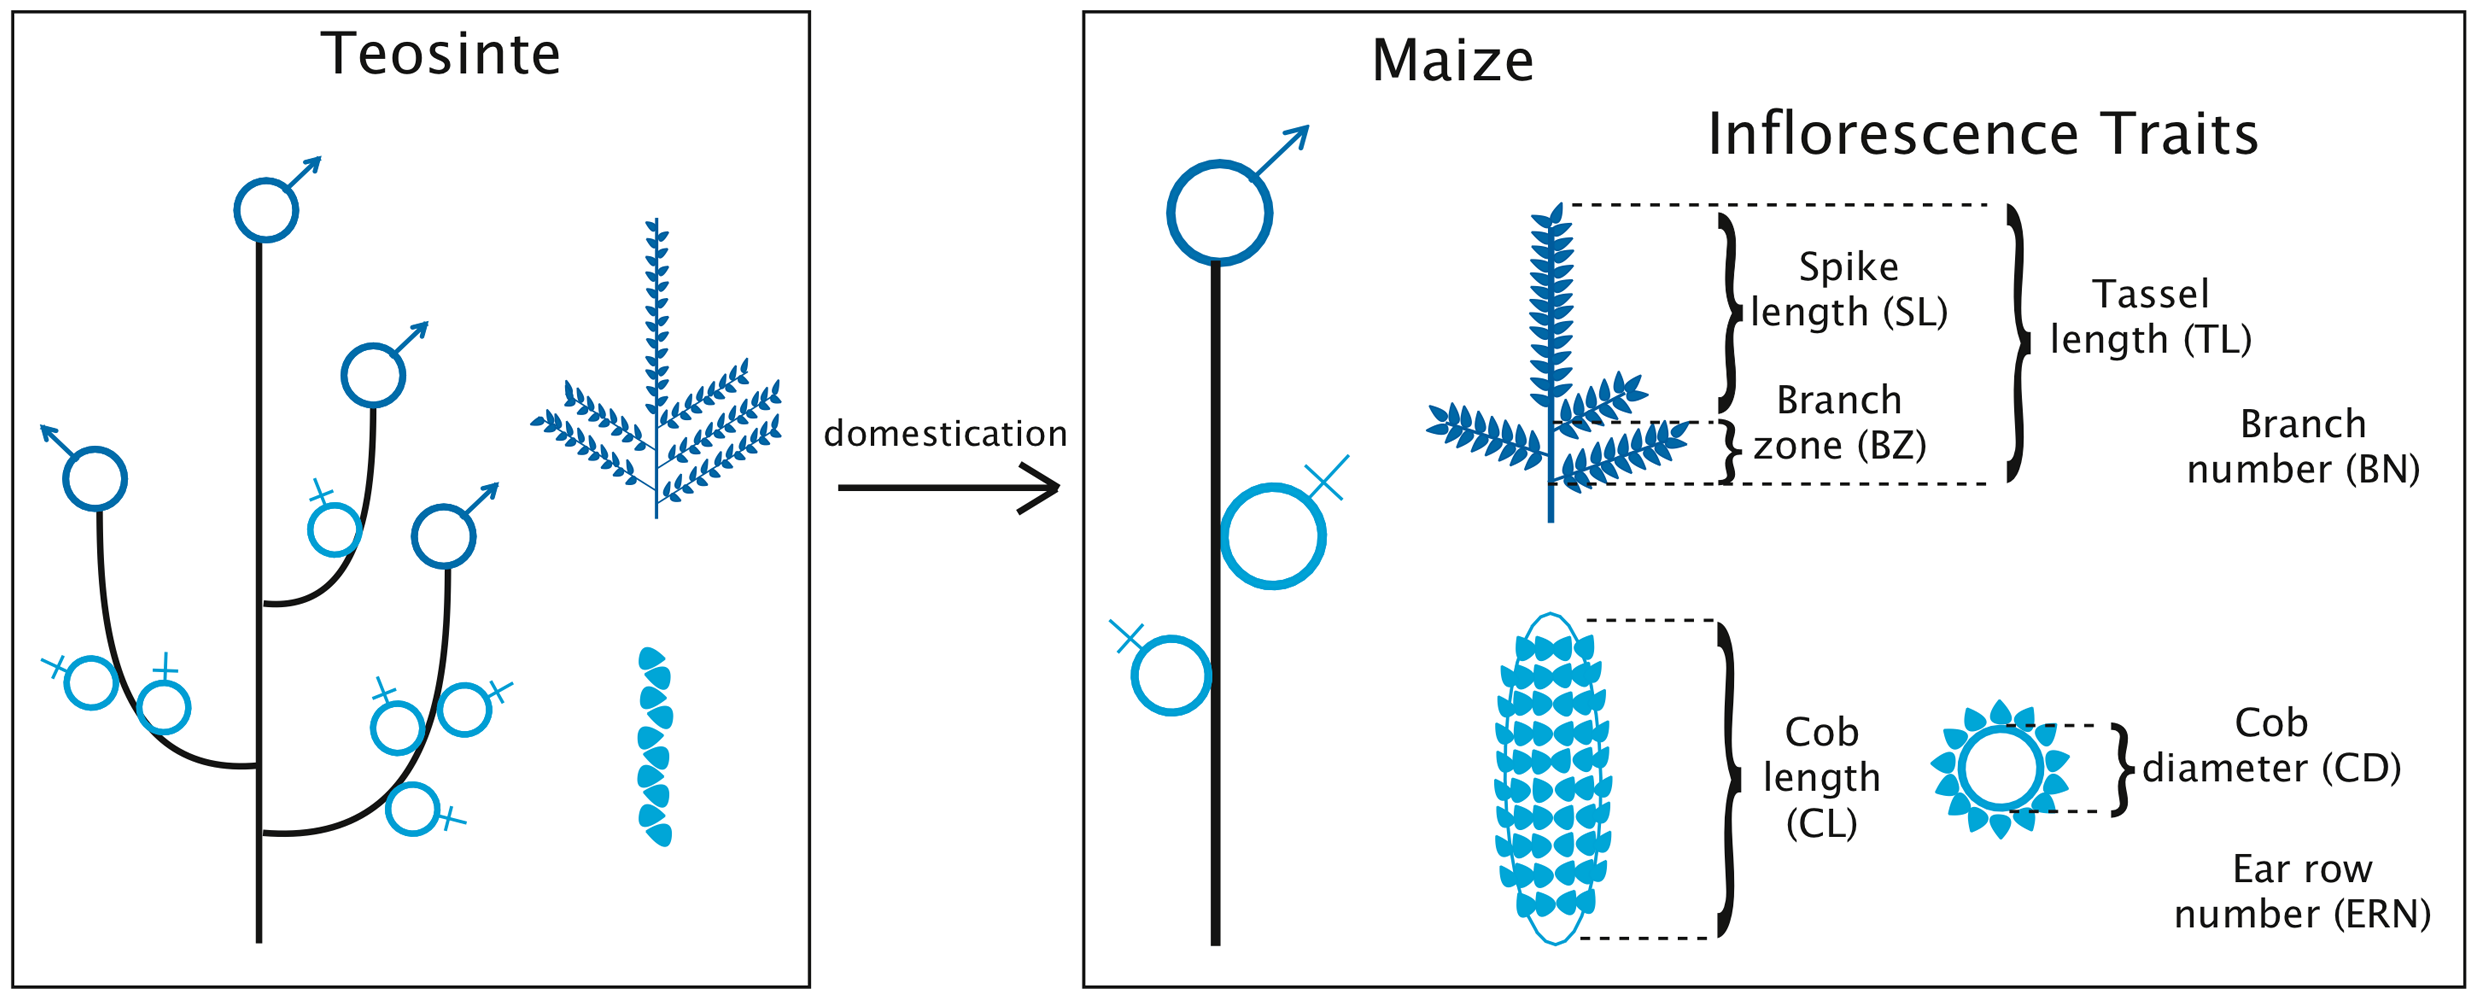 Evolution of plant and inflorescence architecture during maize domestication.